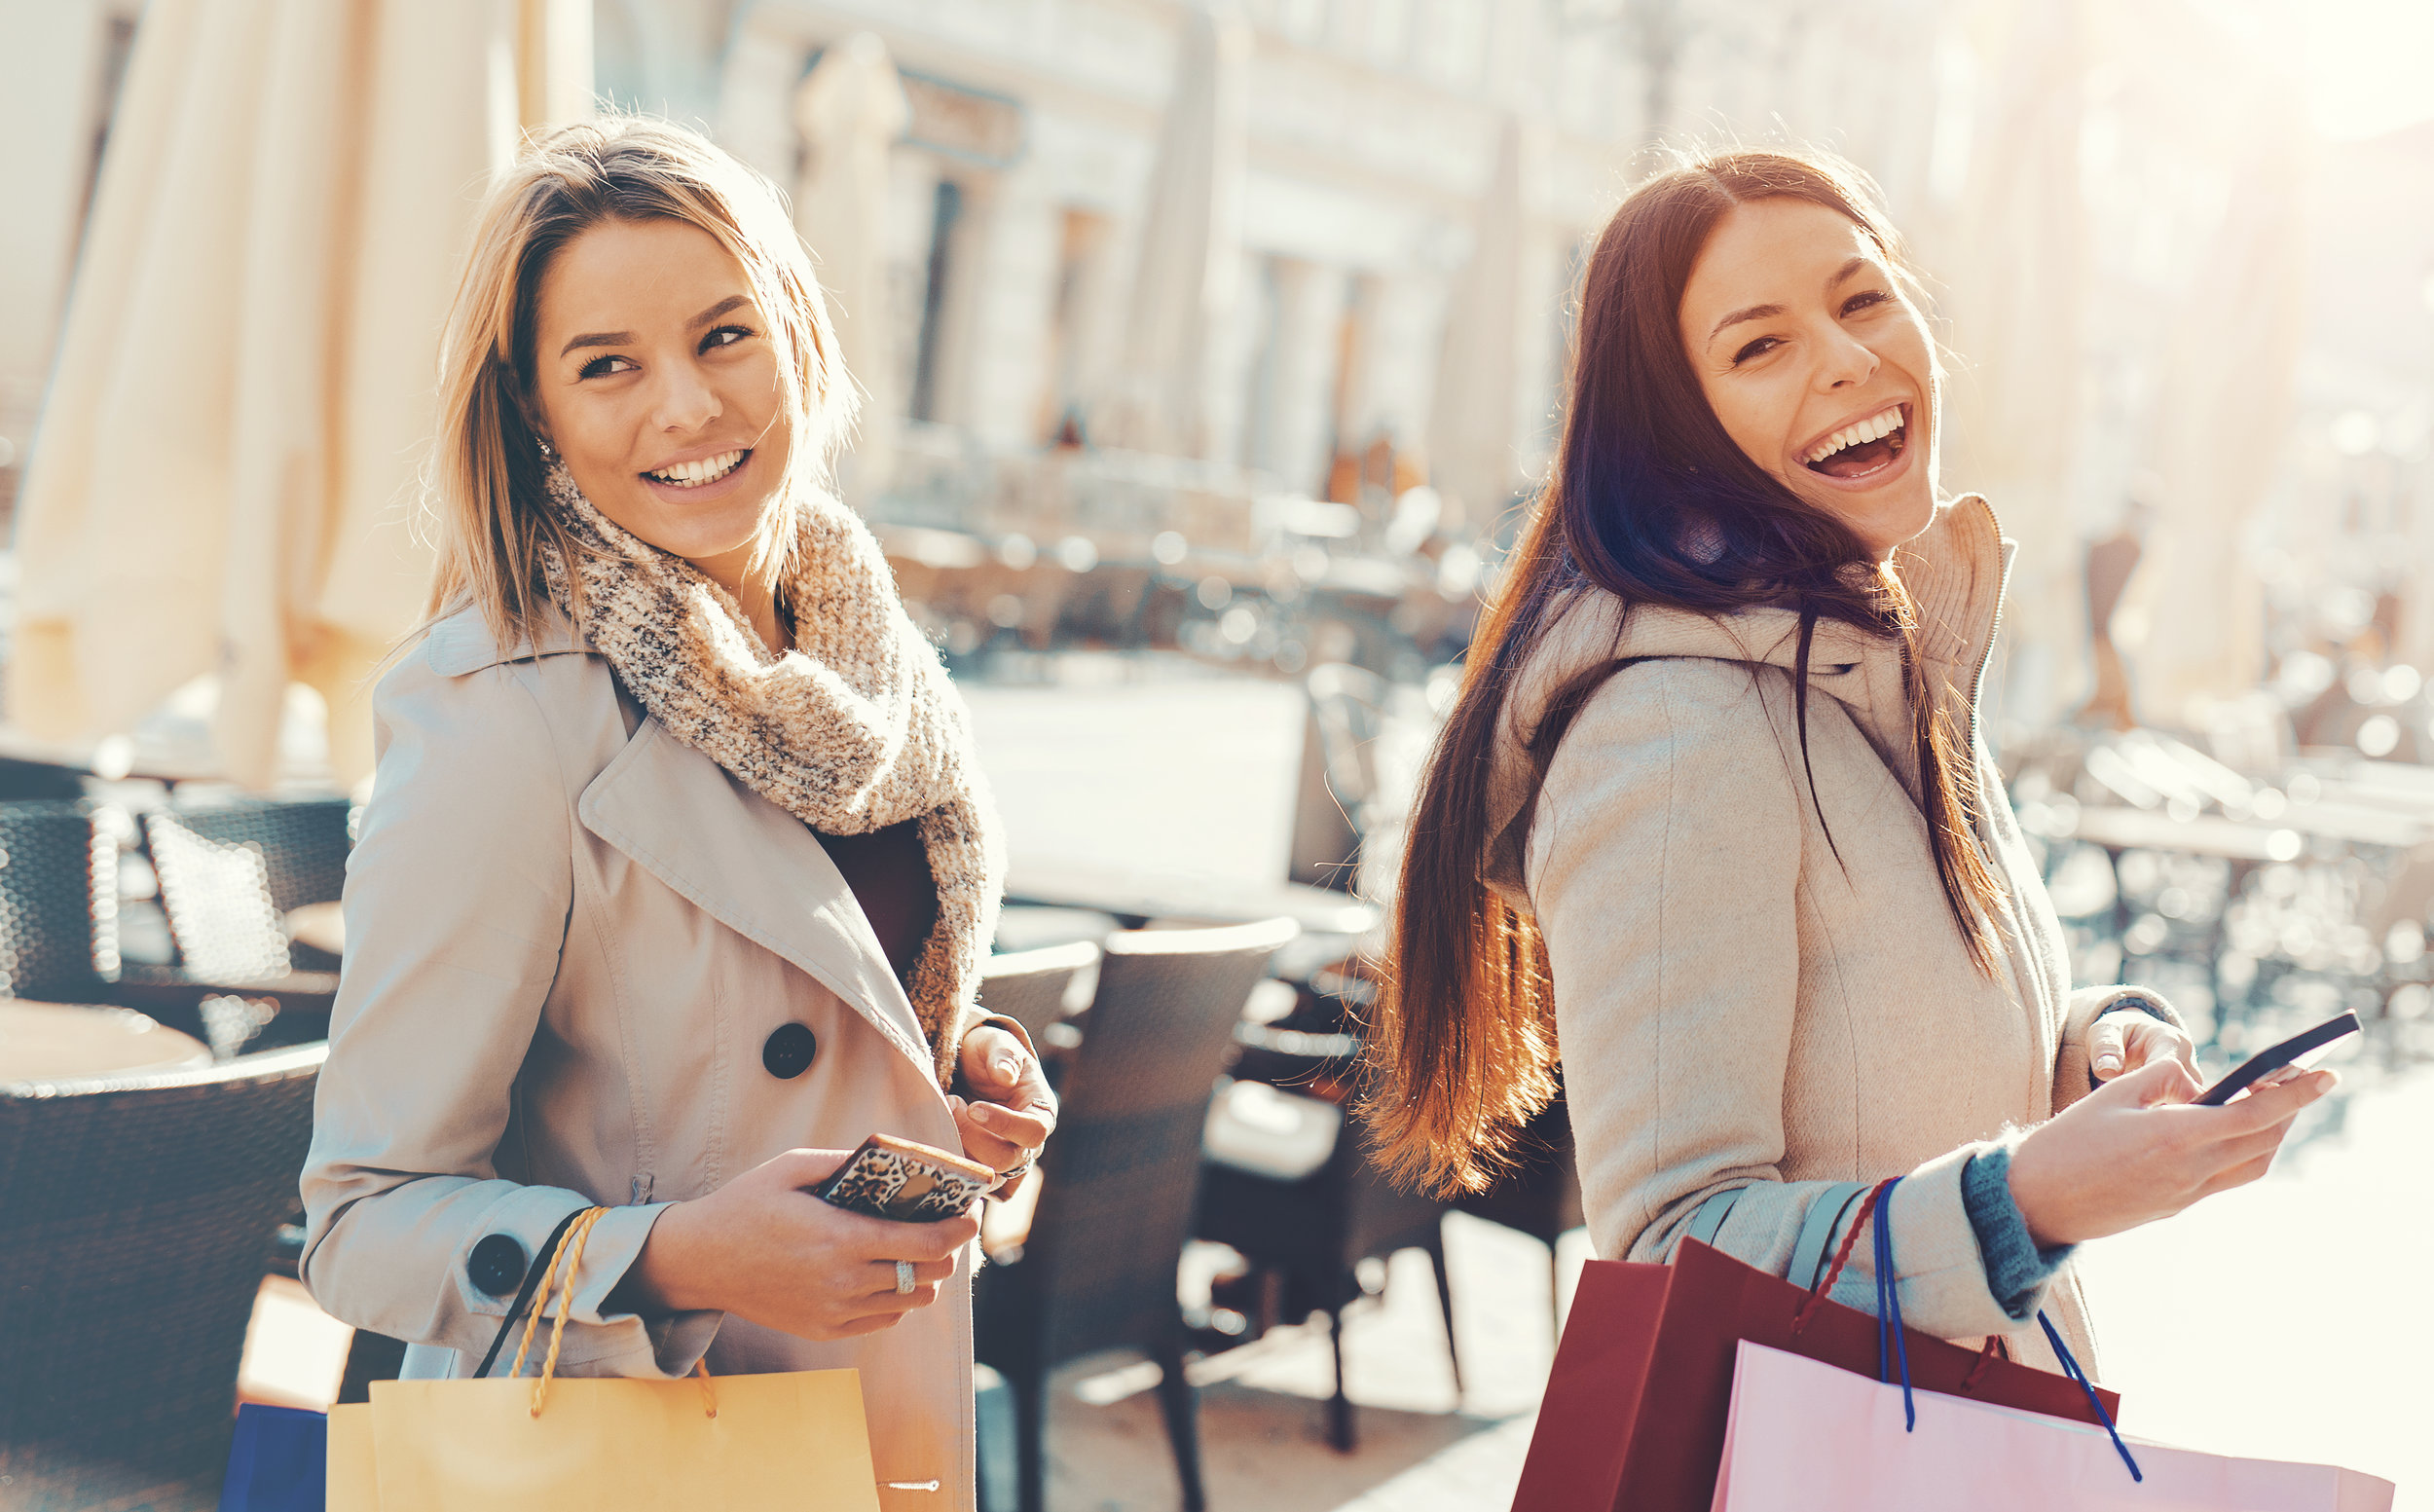 two girls shopping and laughing